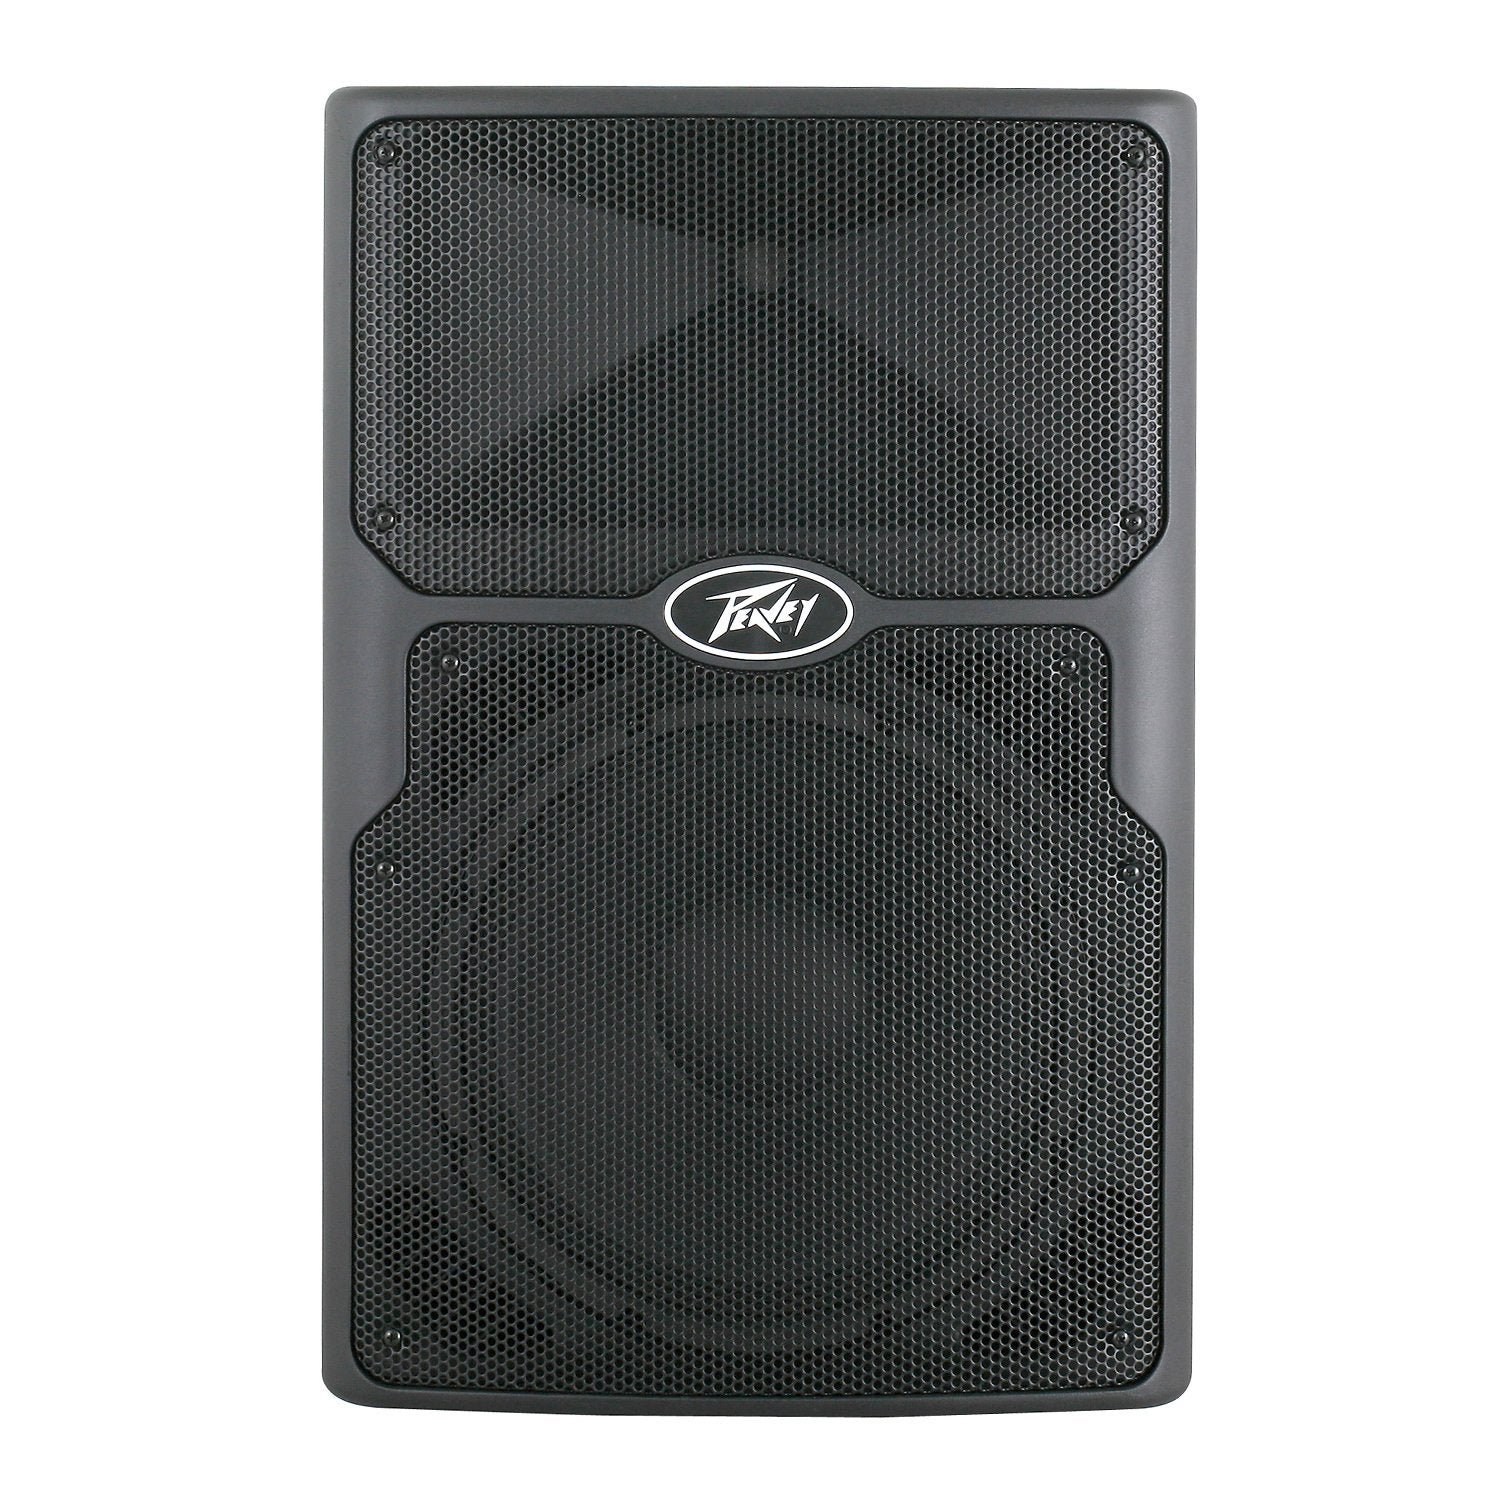 Peavey PVx 12 2-Way Passive, Unpowered PA Speaker, 12 Inch